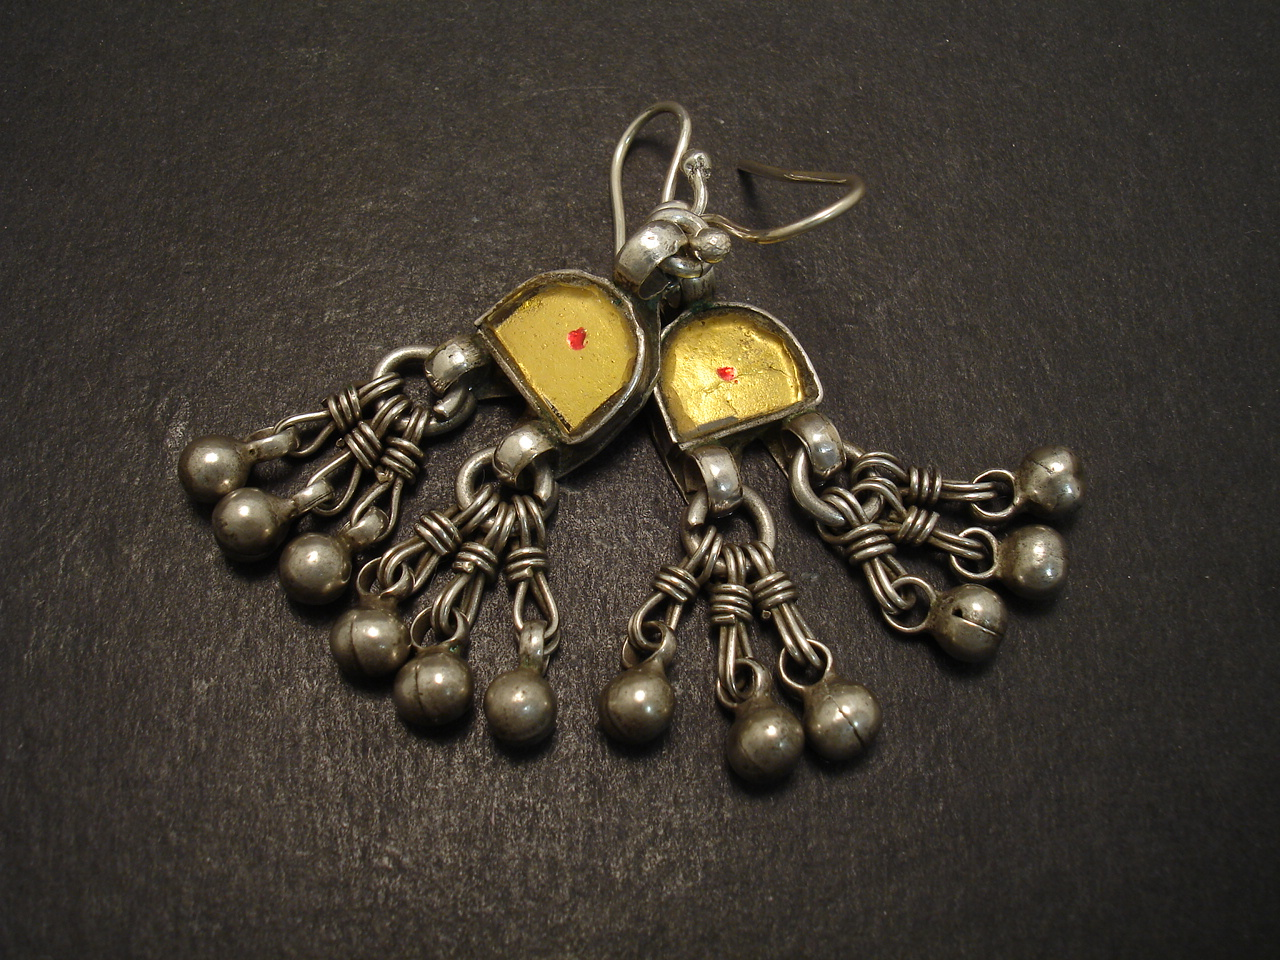 goods earrings dangle discovered handmade nickel rajasthani chand fre baali